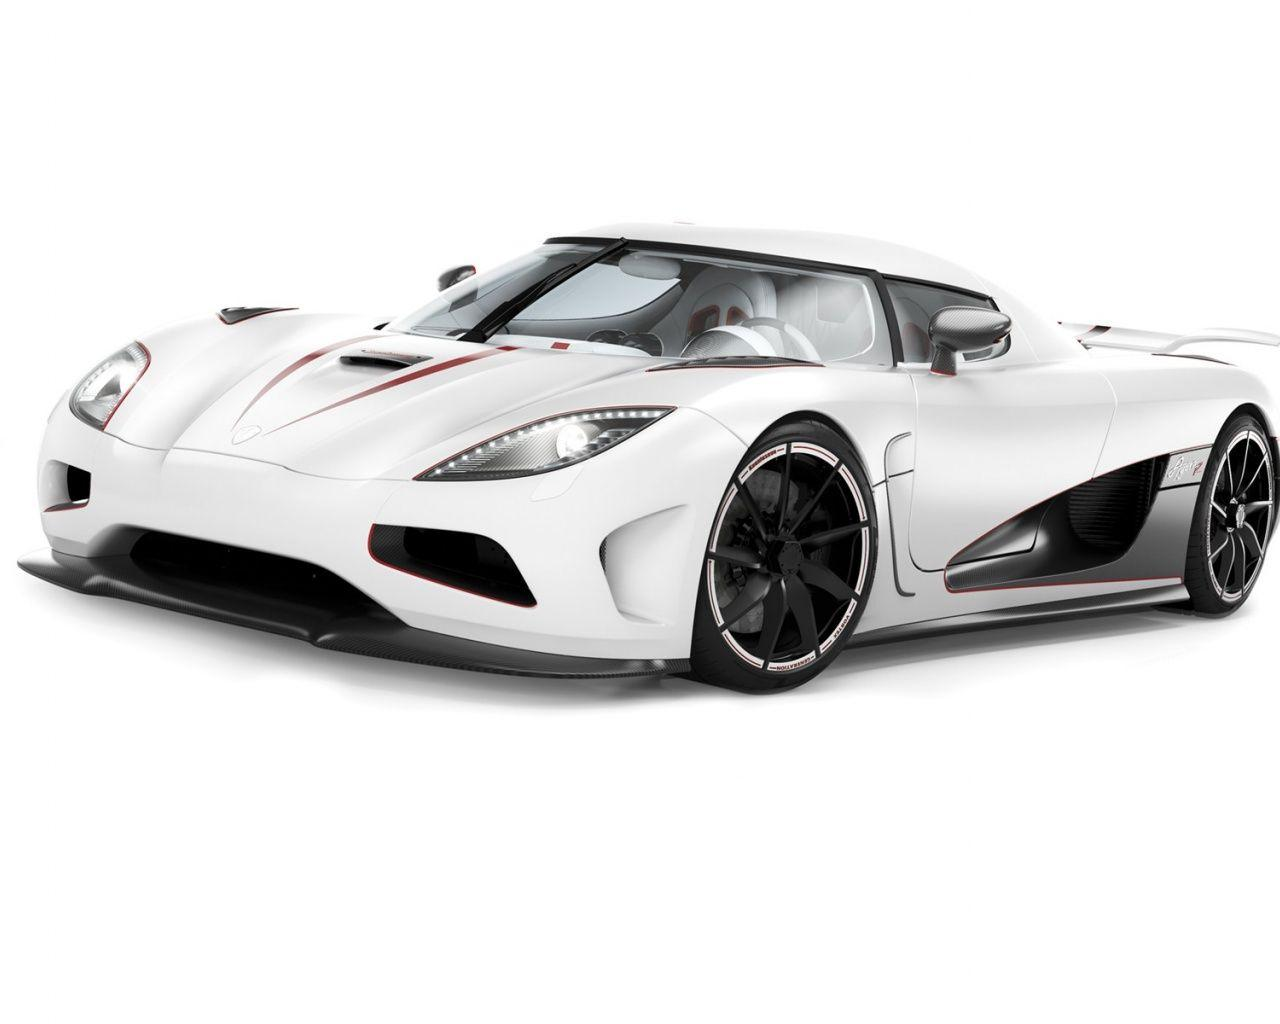 Koenigsegg image koenigsegg Agera R HD wallpapers and backgrounds